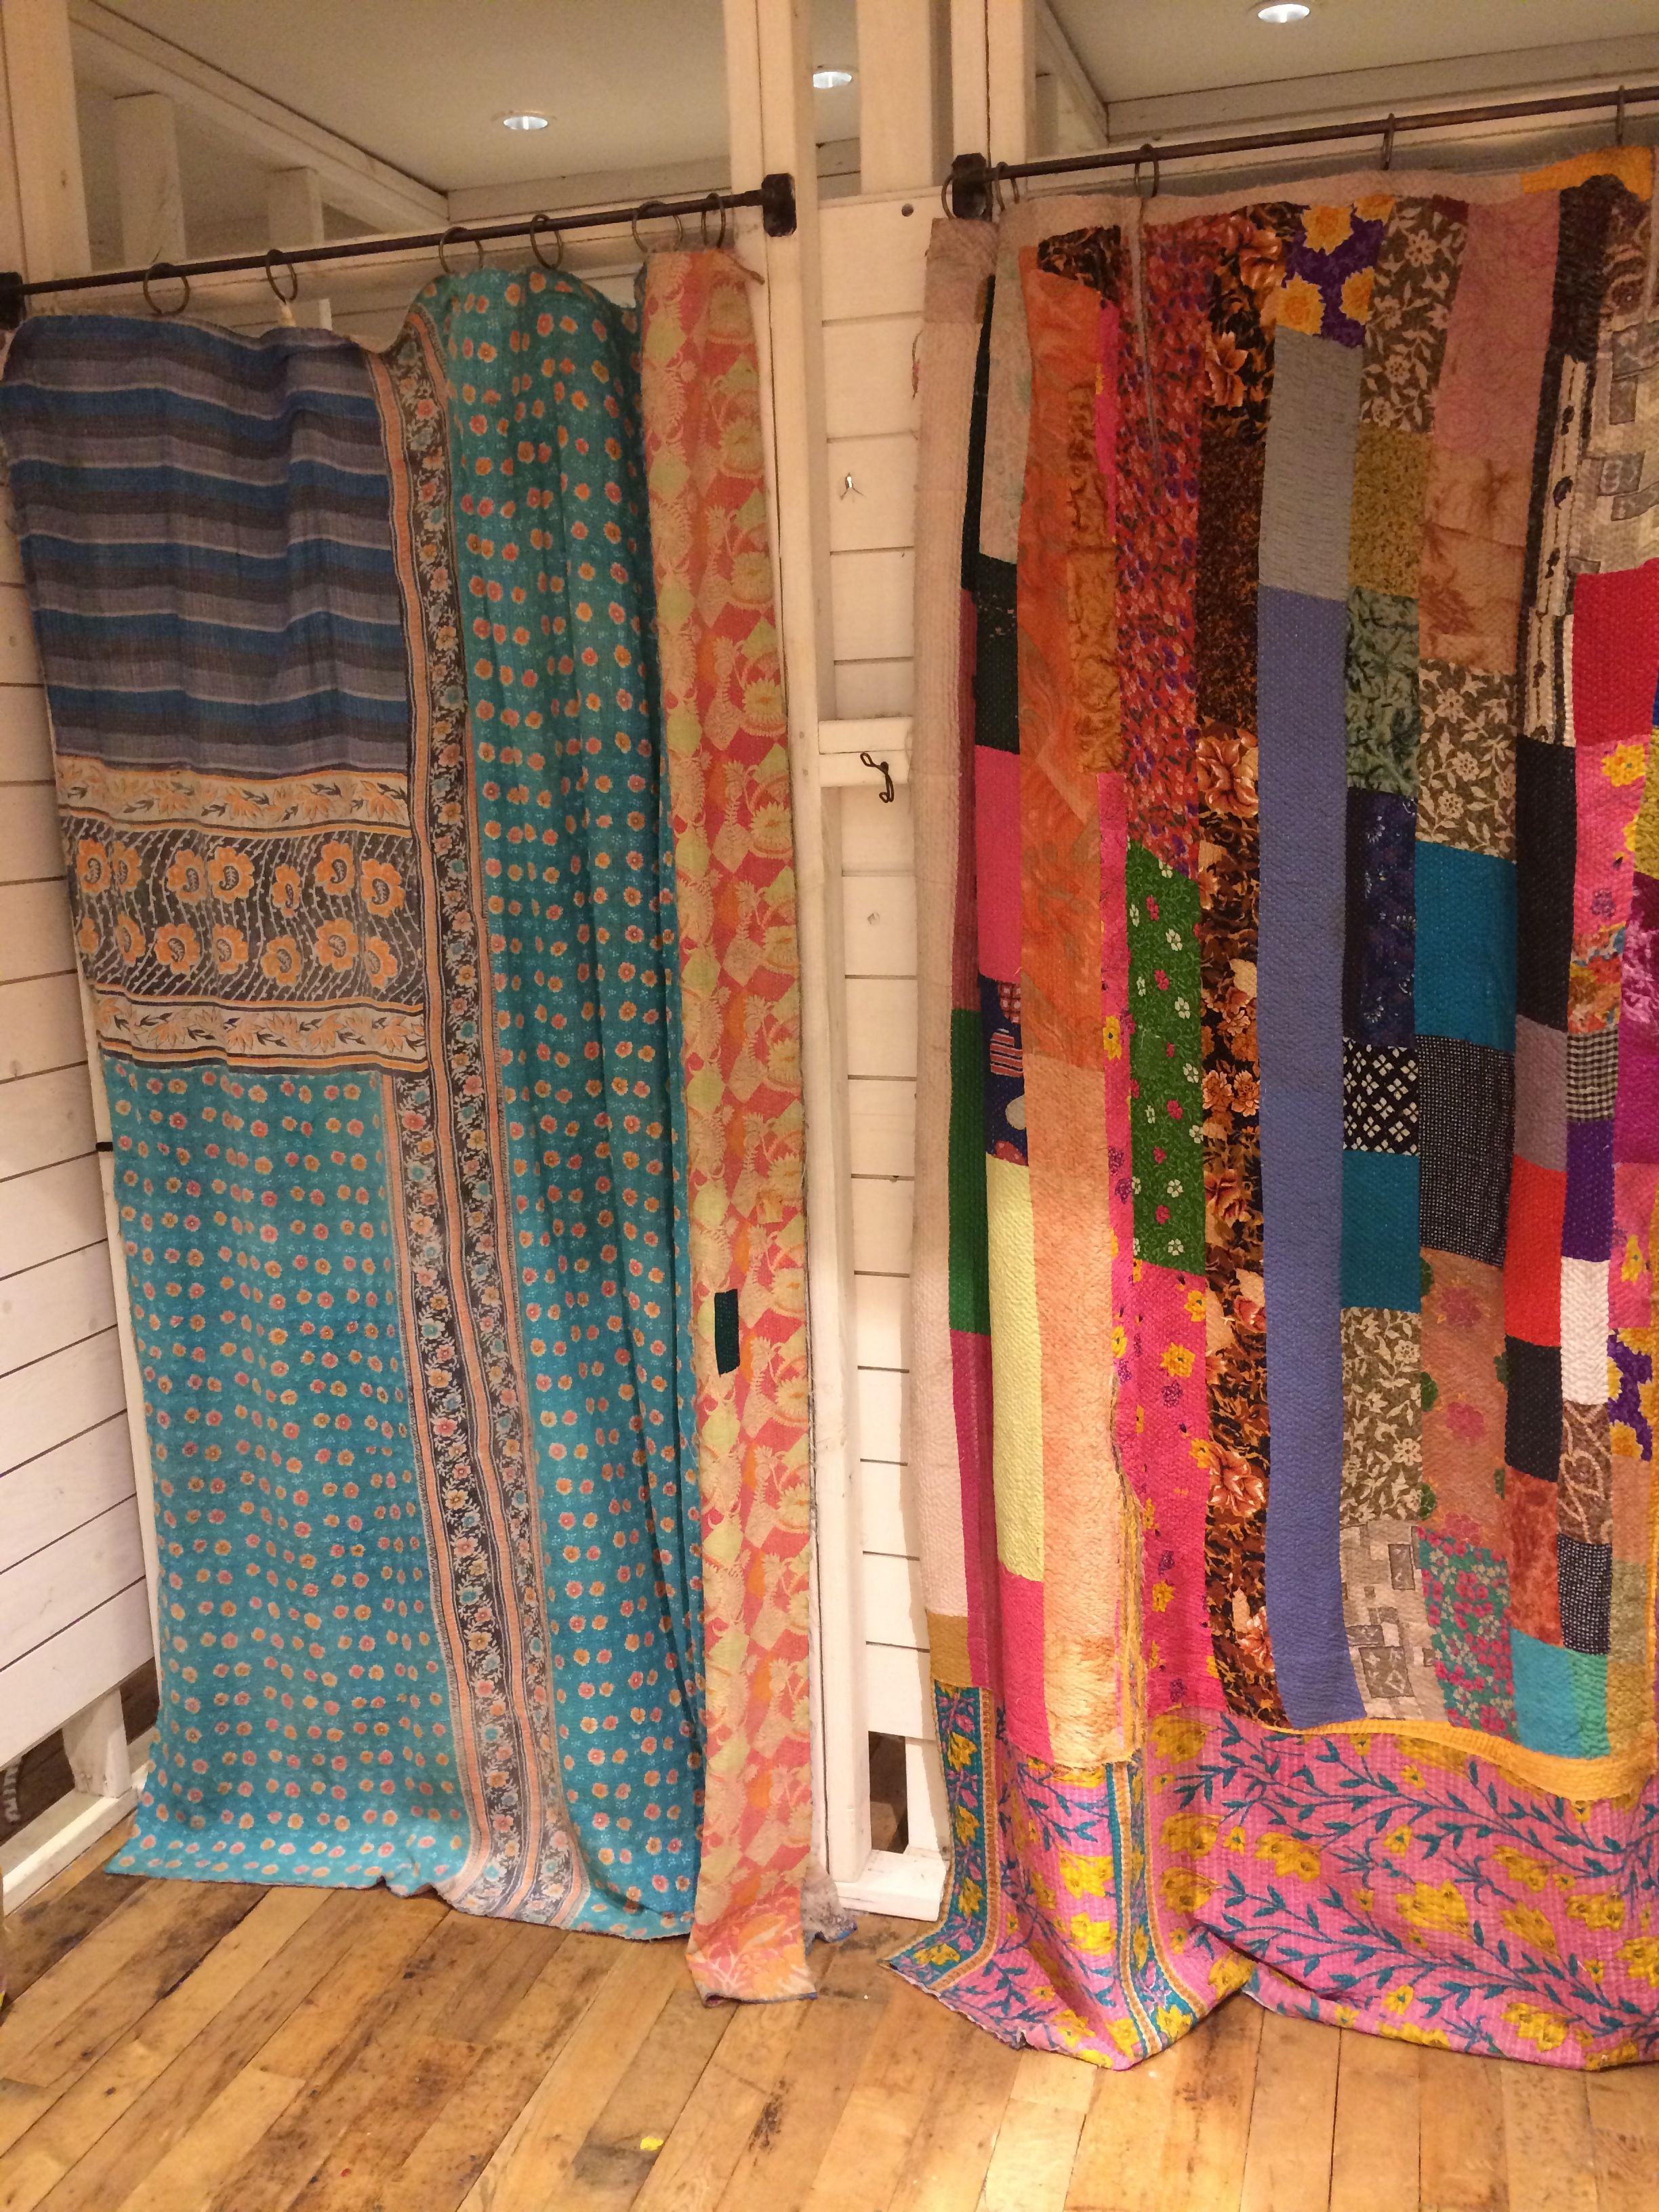 Drapes from left over fabric, great idea